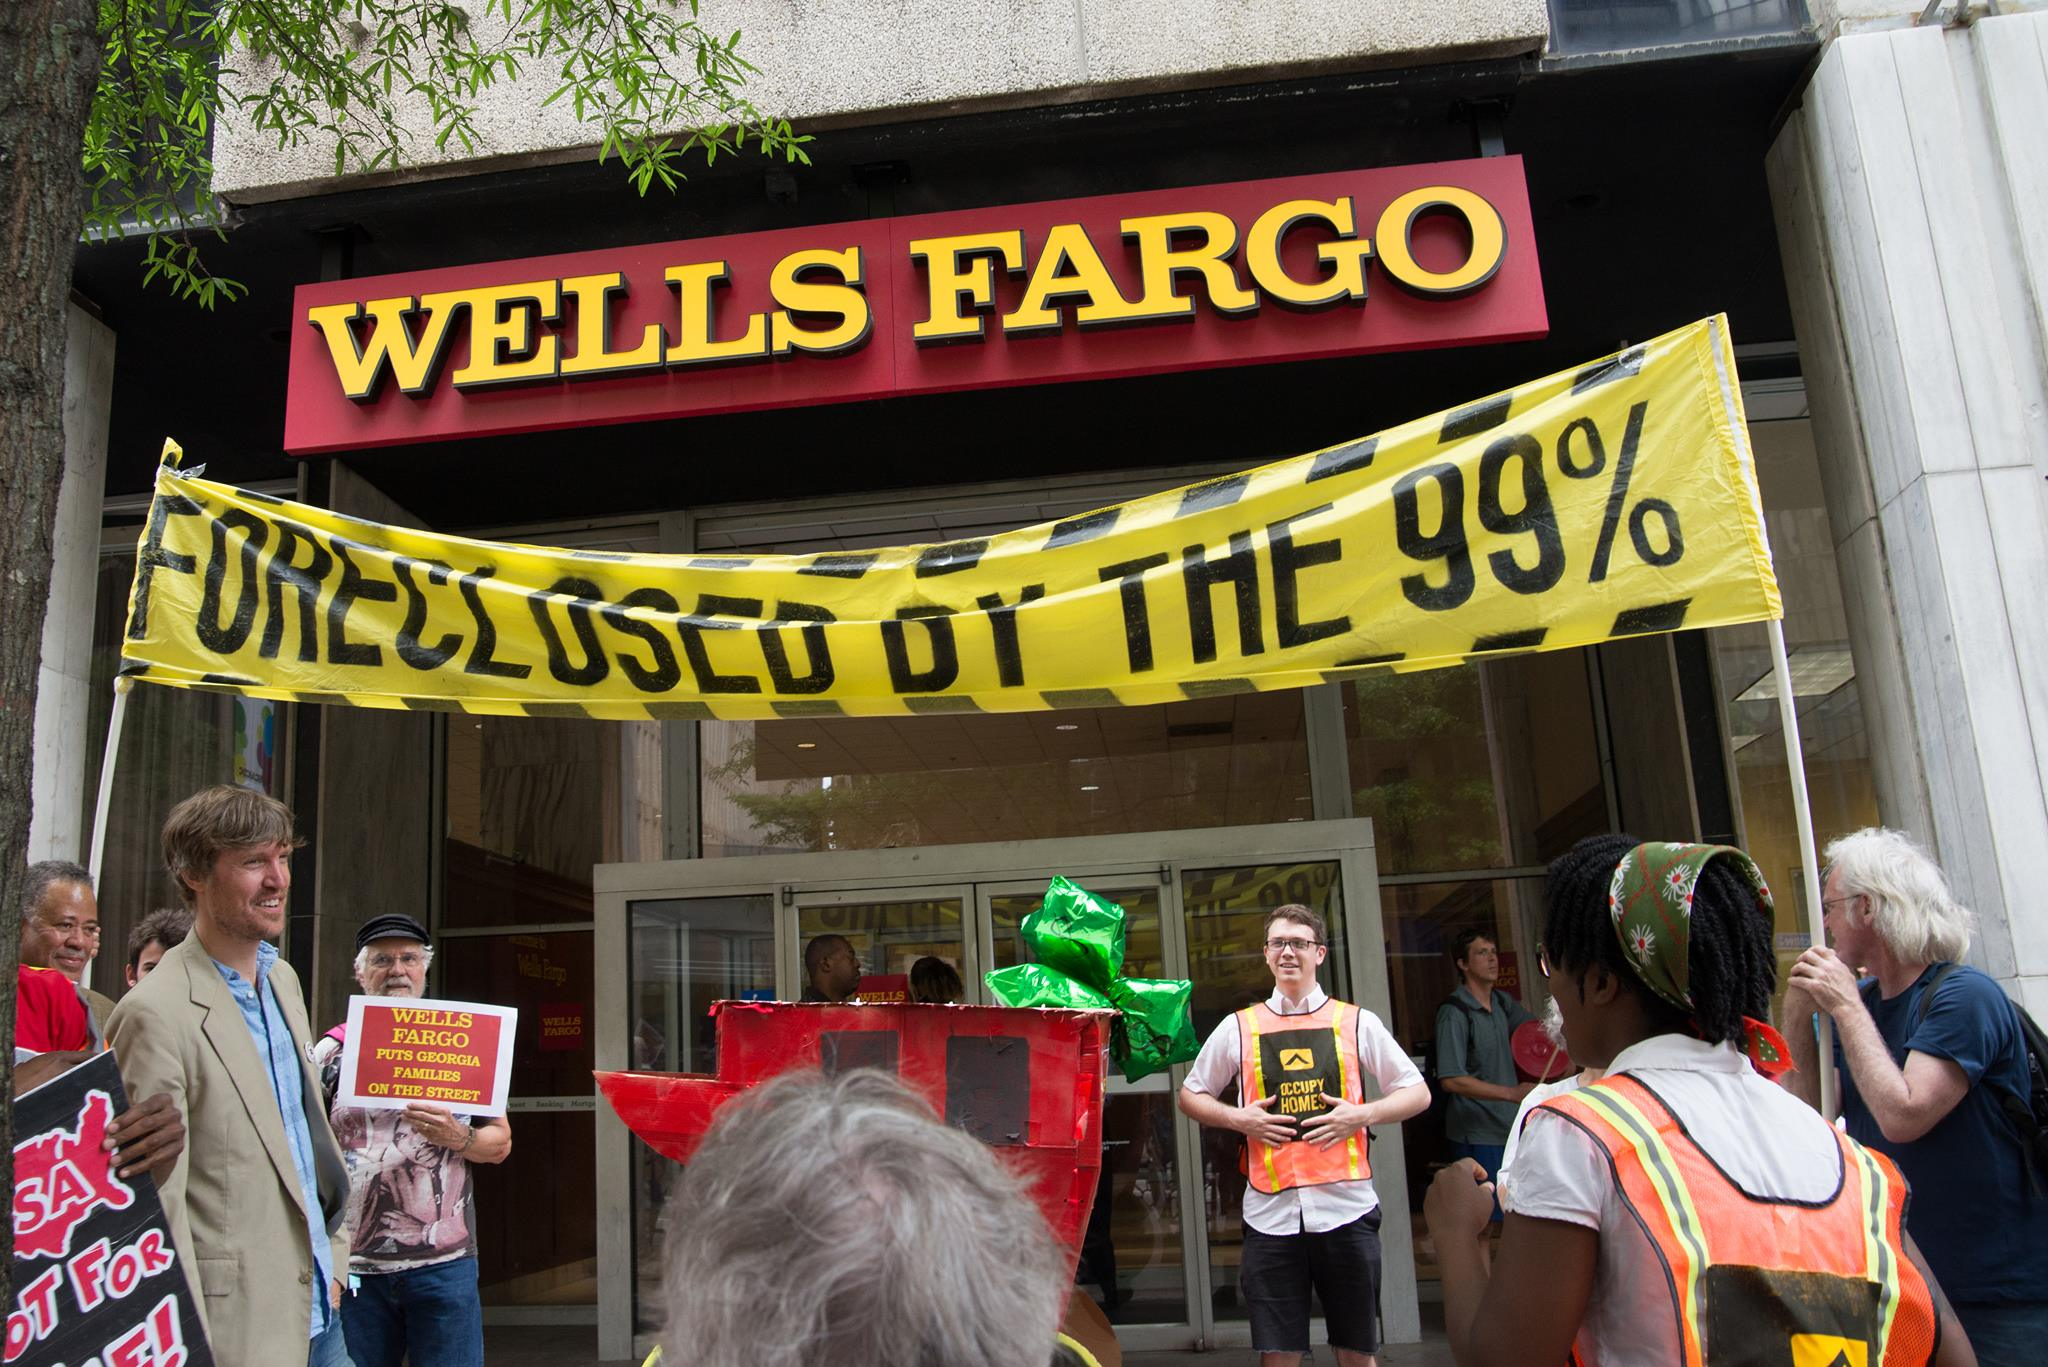 Foreclose On Wells Fargo: Day 1